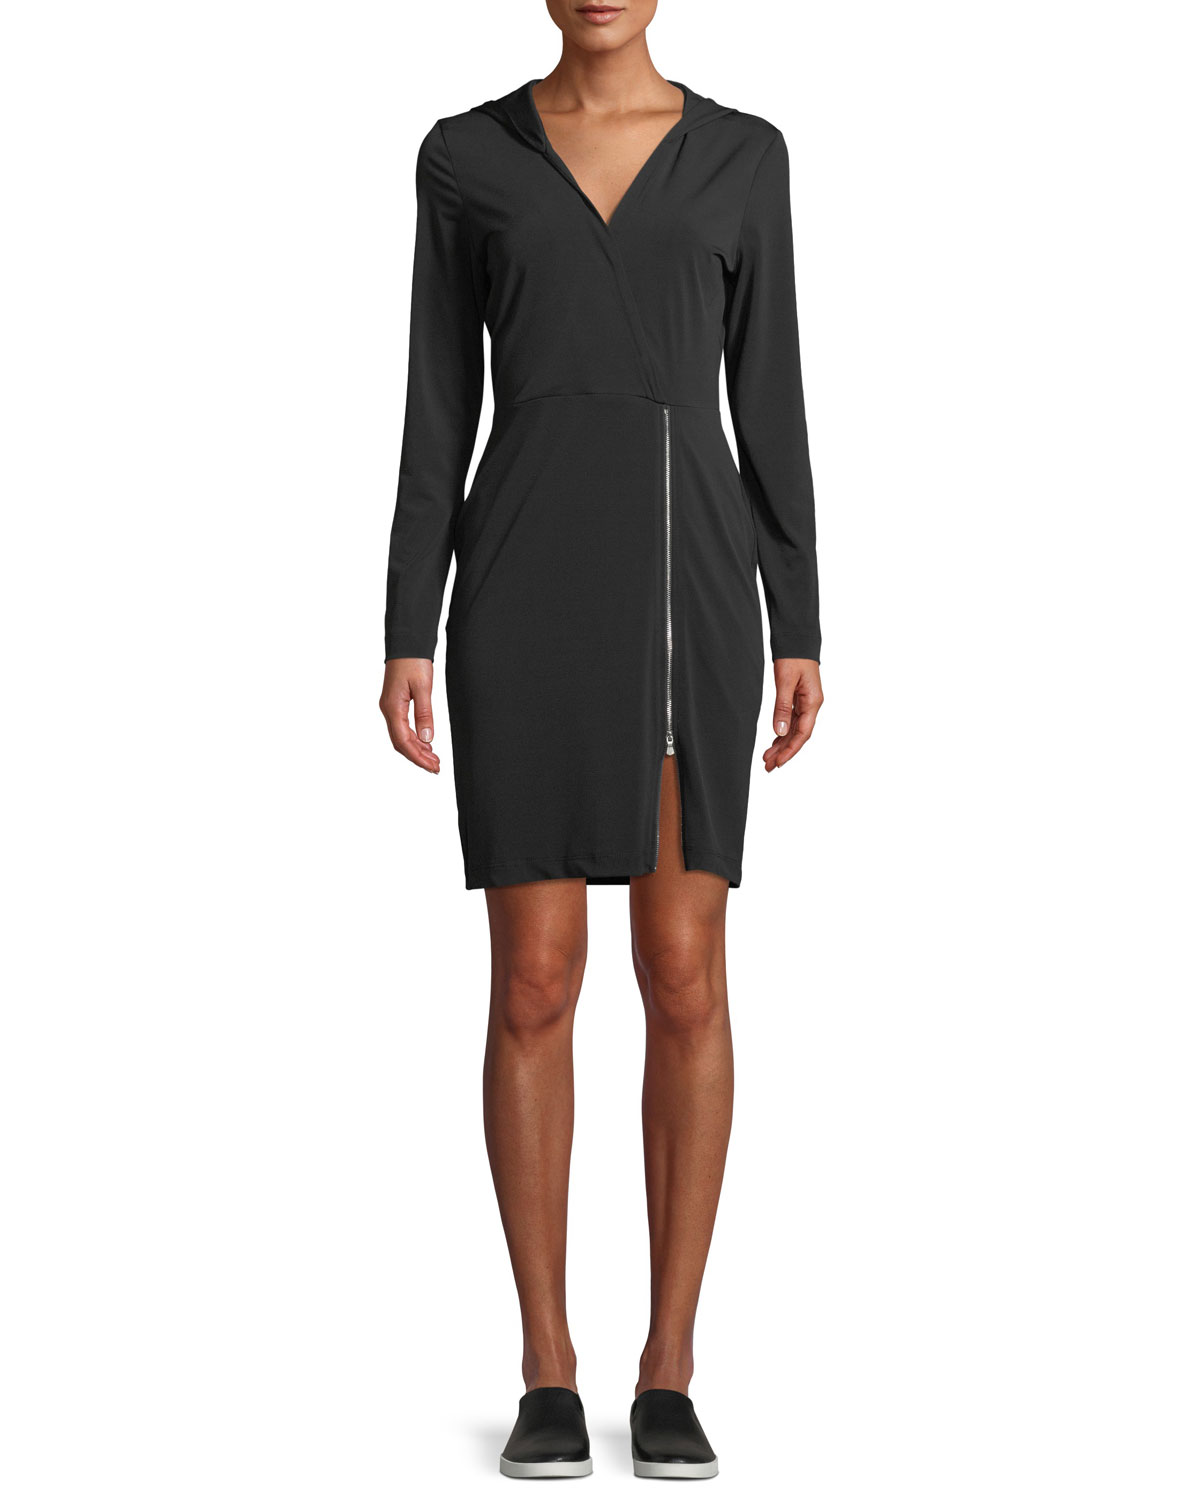 ANATOMIE Fresia Hooded Jersey Dress With Adjustable Zipper in Black